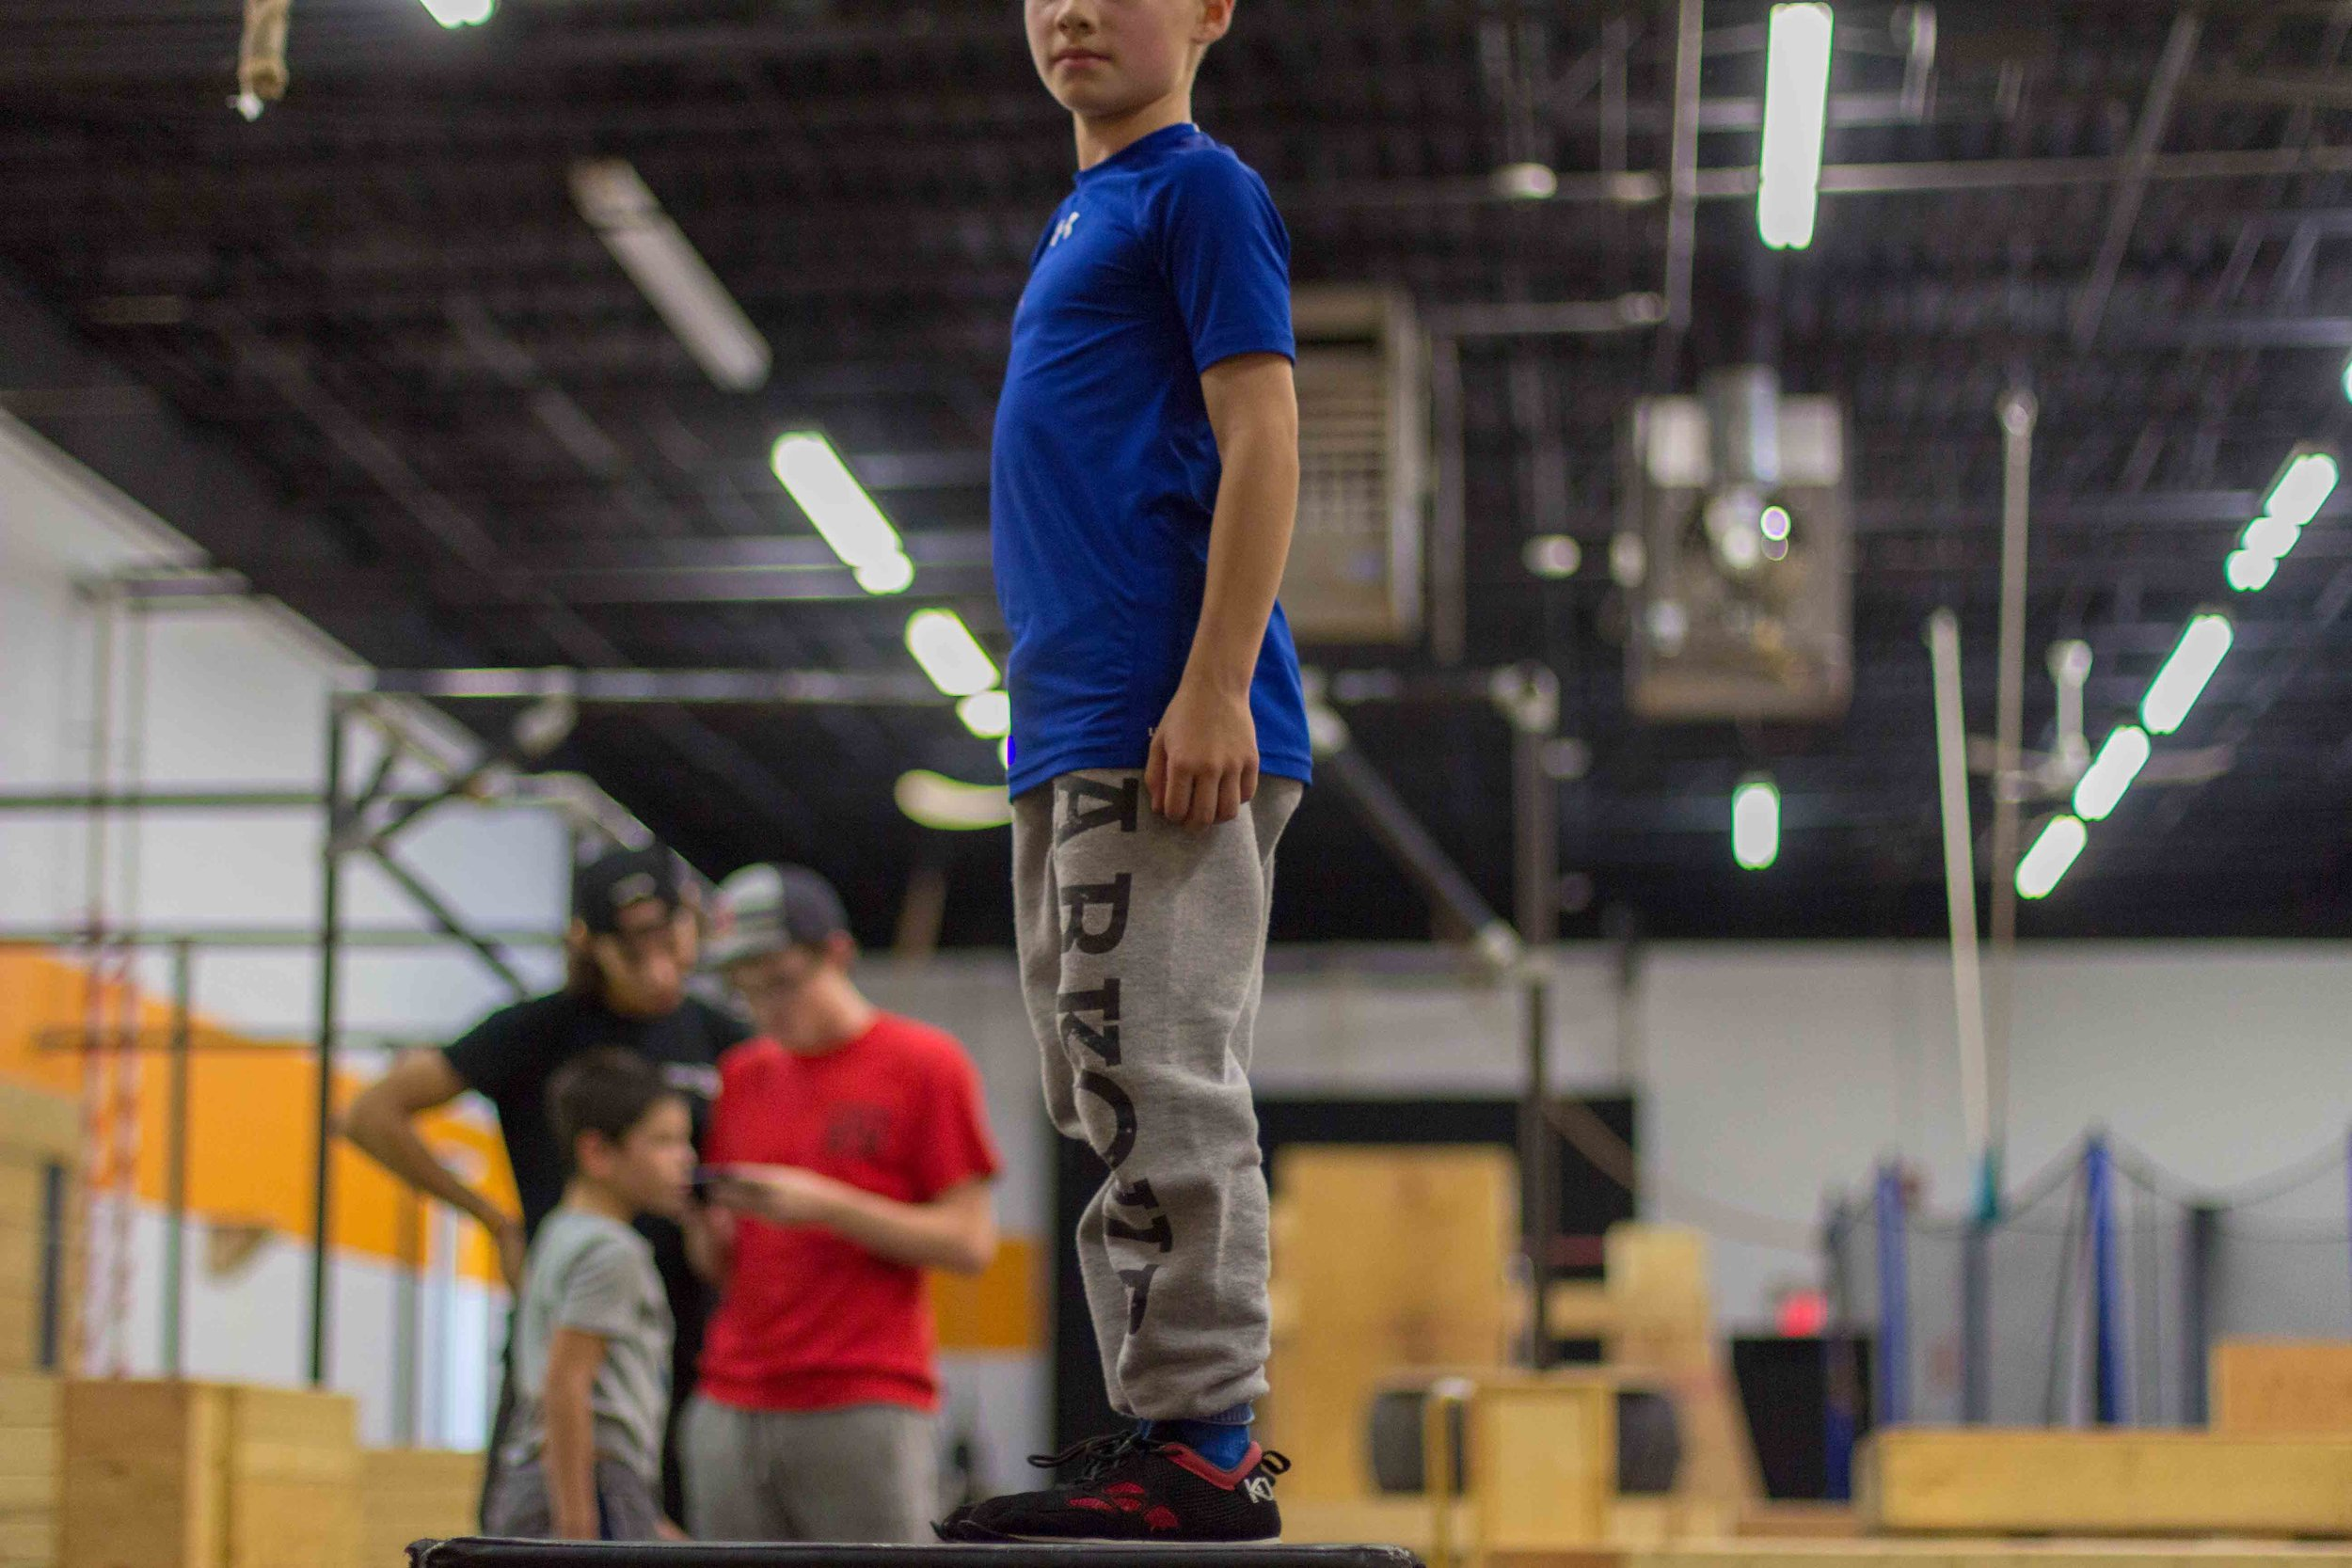 BOOK YOUR PARTY - ONCE YOU GET CONFIRMATION FOR YOUR PARTY, MAKE SURE EVERYONE IN YOUR PARTY HAS A WAIVER SIGNED! THIS WAY THE KIDS CAN JUMP RIGHT INTO THE ACTION.